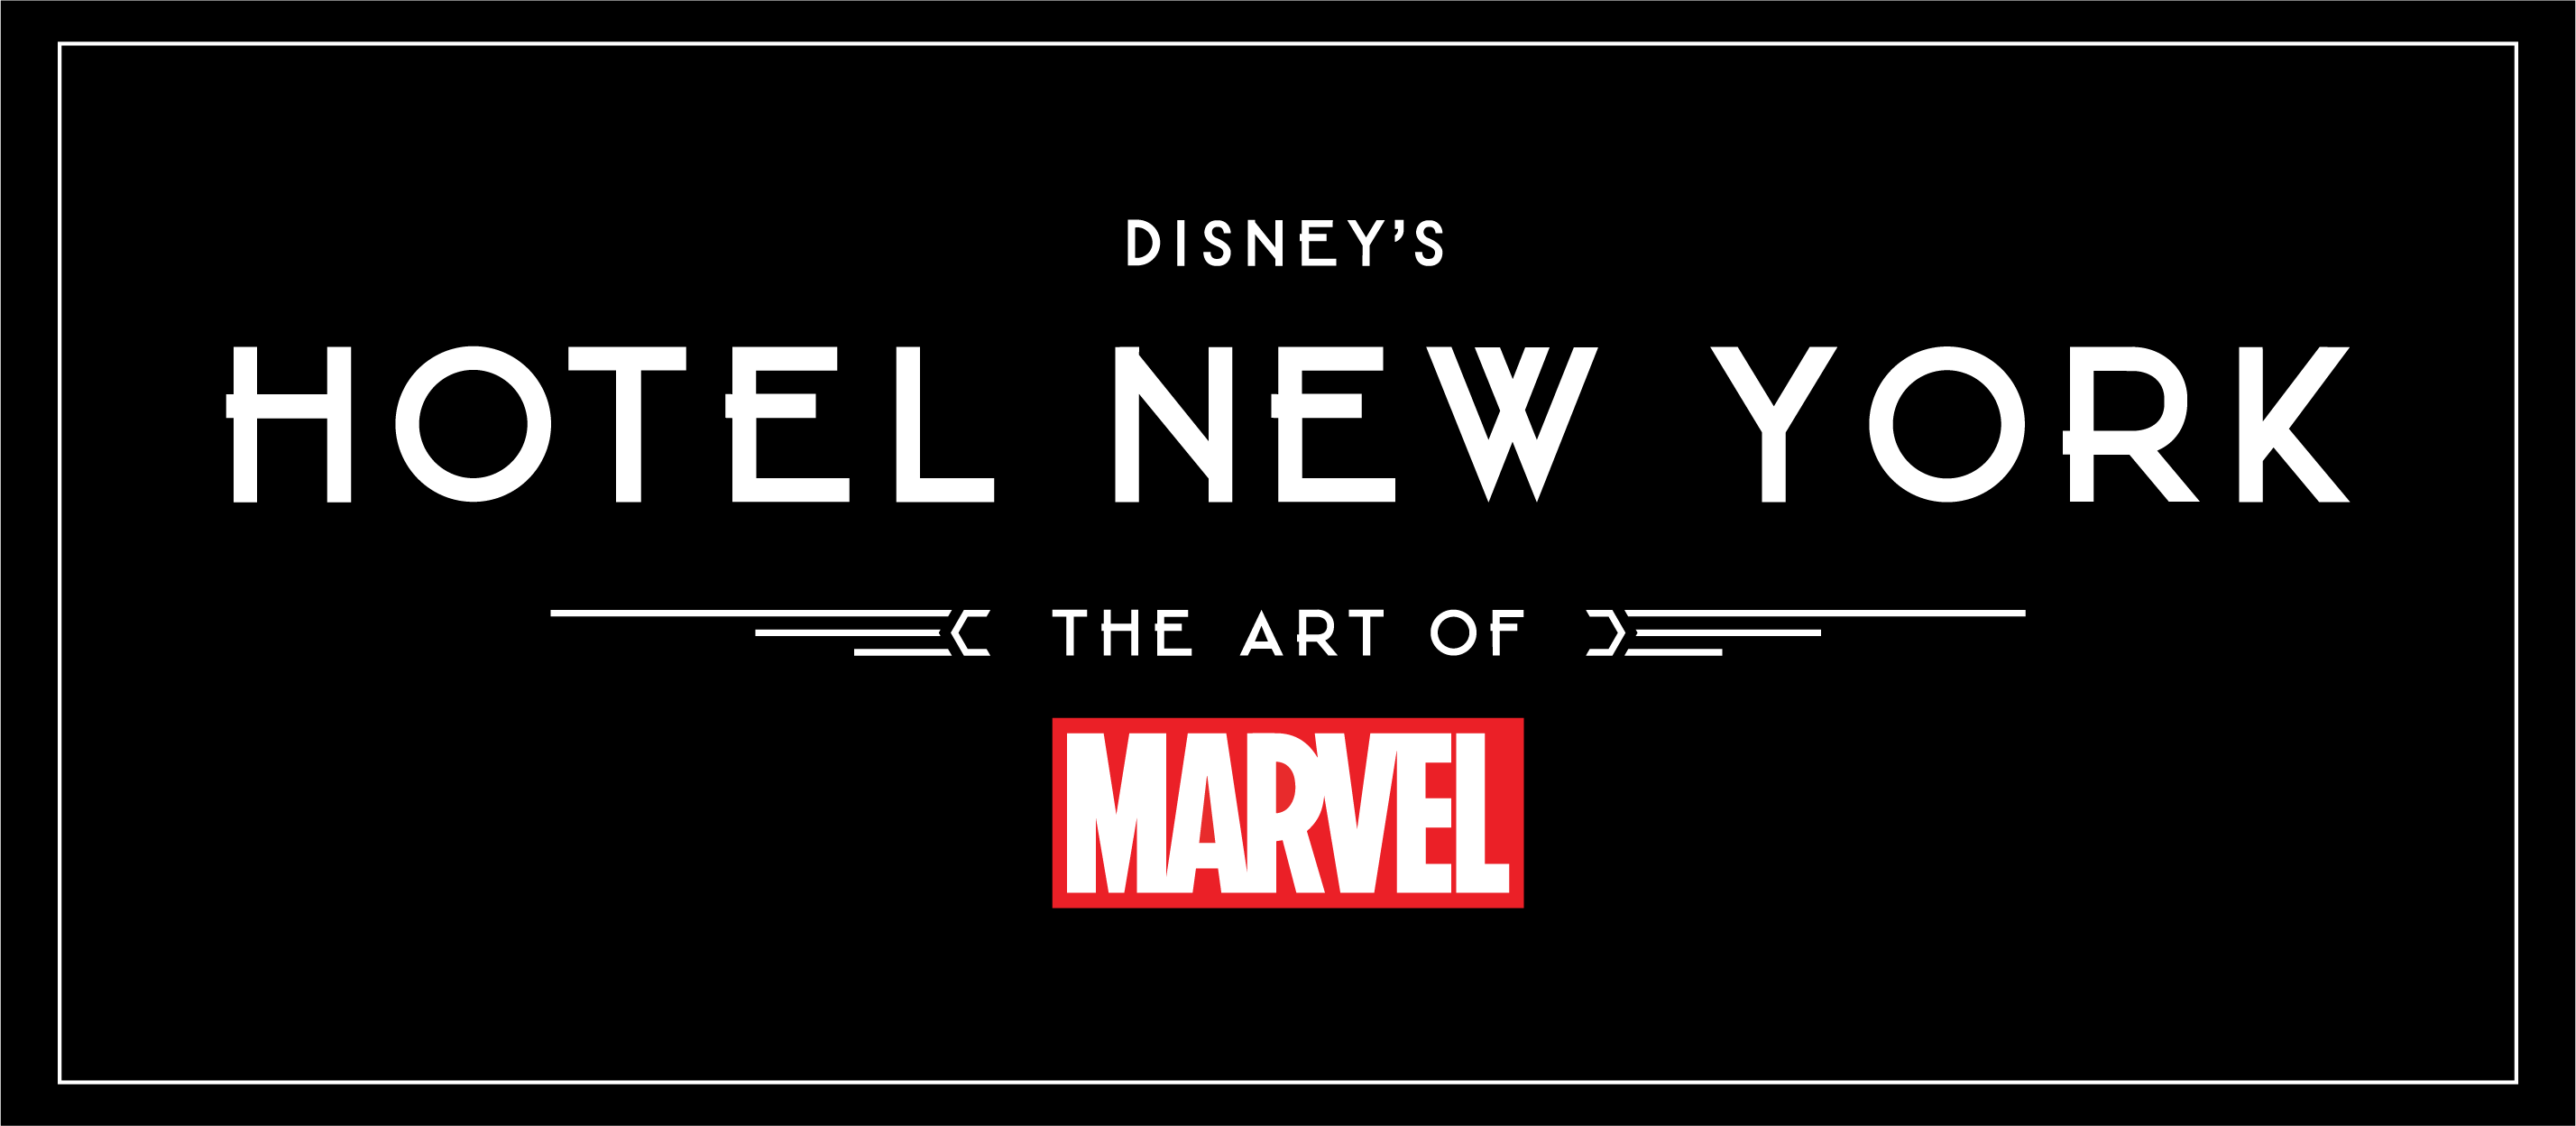 Disney's Hotel New York - The Art of Marvel 01_log10